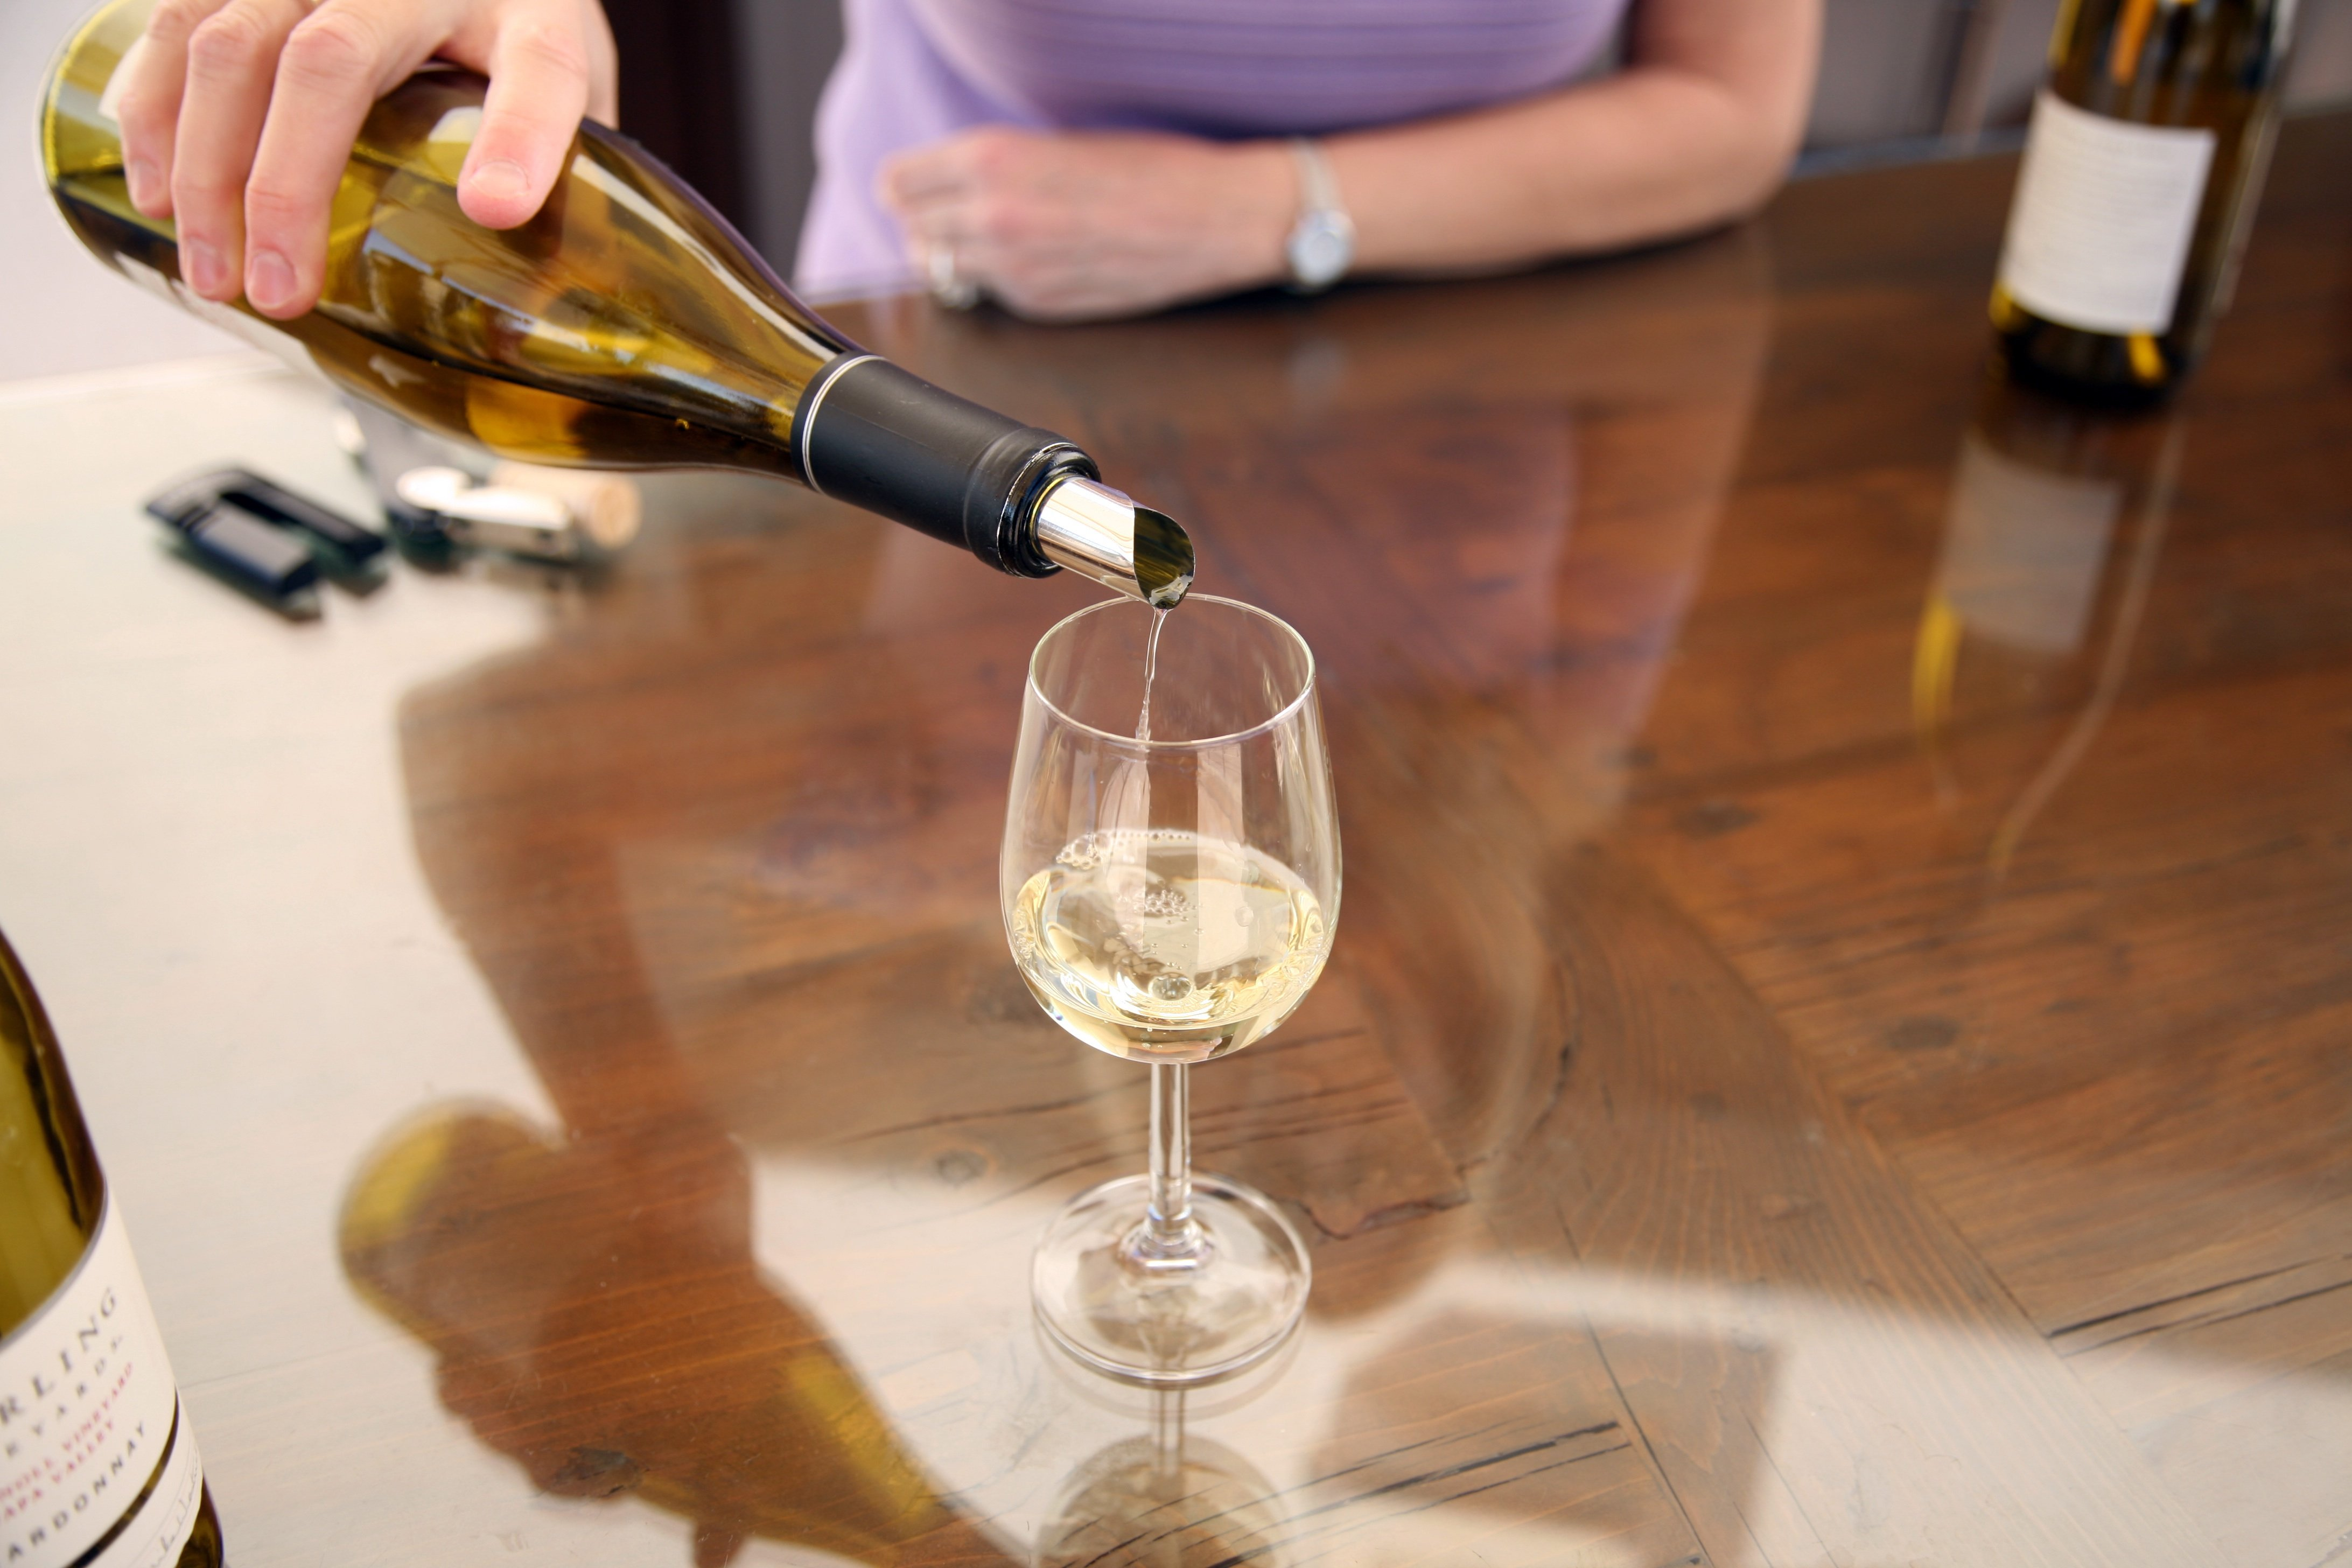 wine being poured from a bottle to a wine glass1